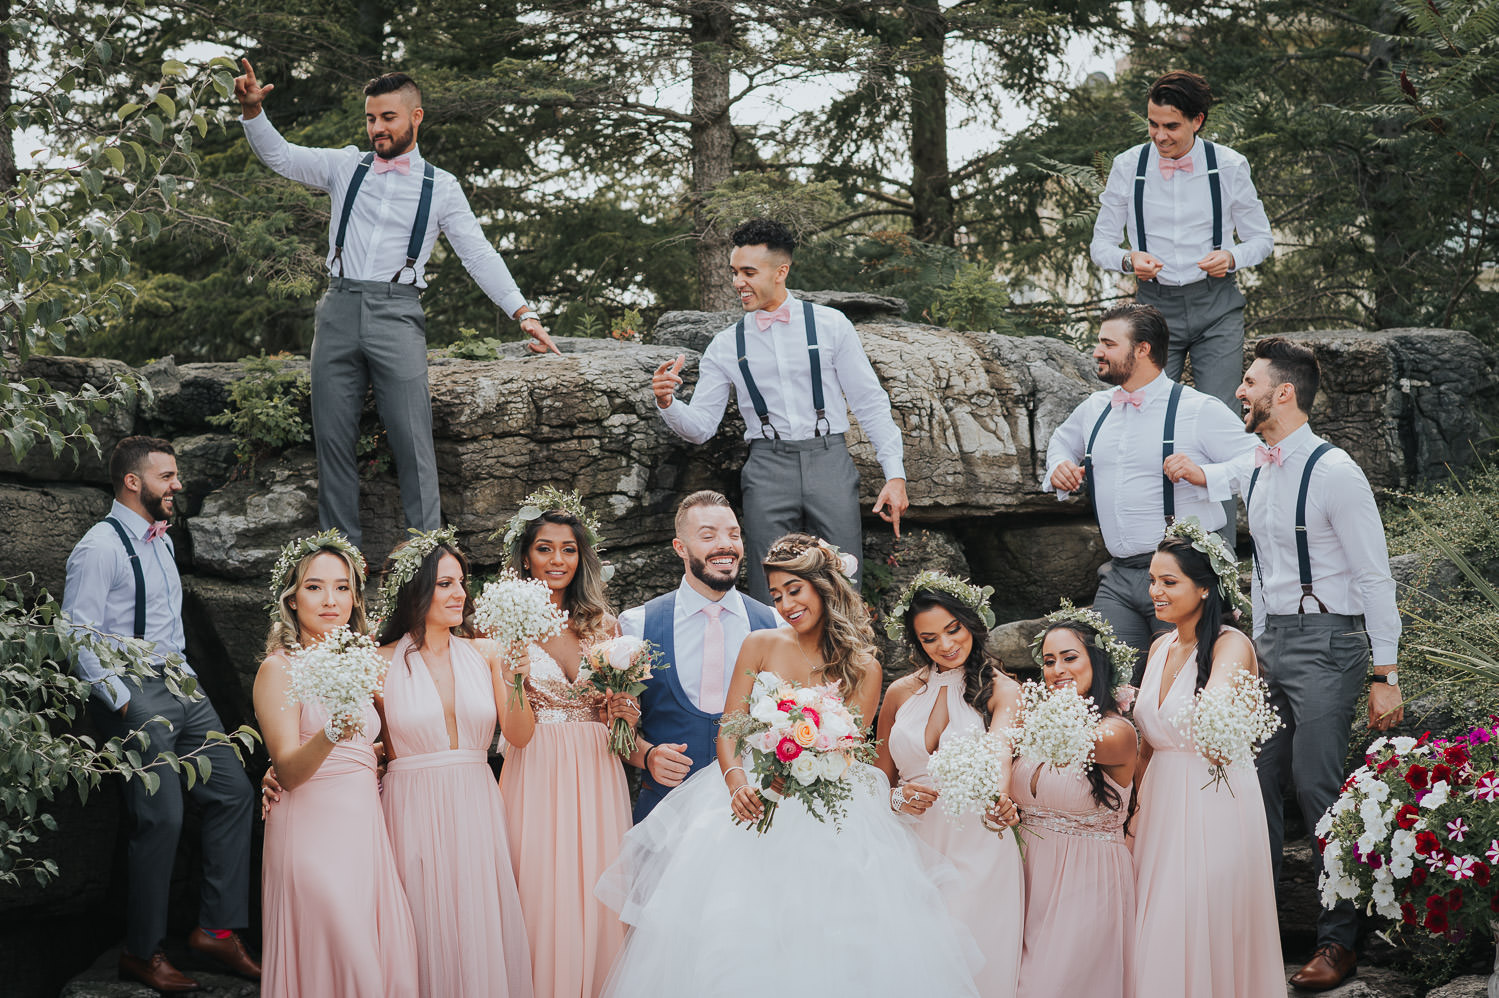 Bridal Party dancing at a Toronto Outdoor Wedding